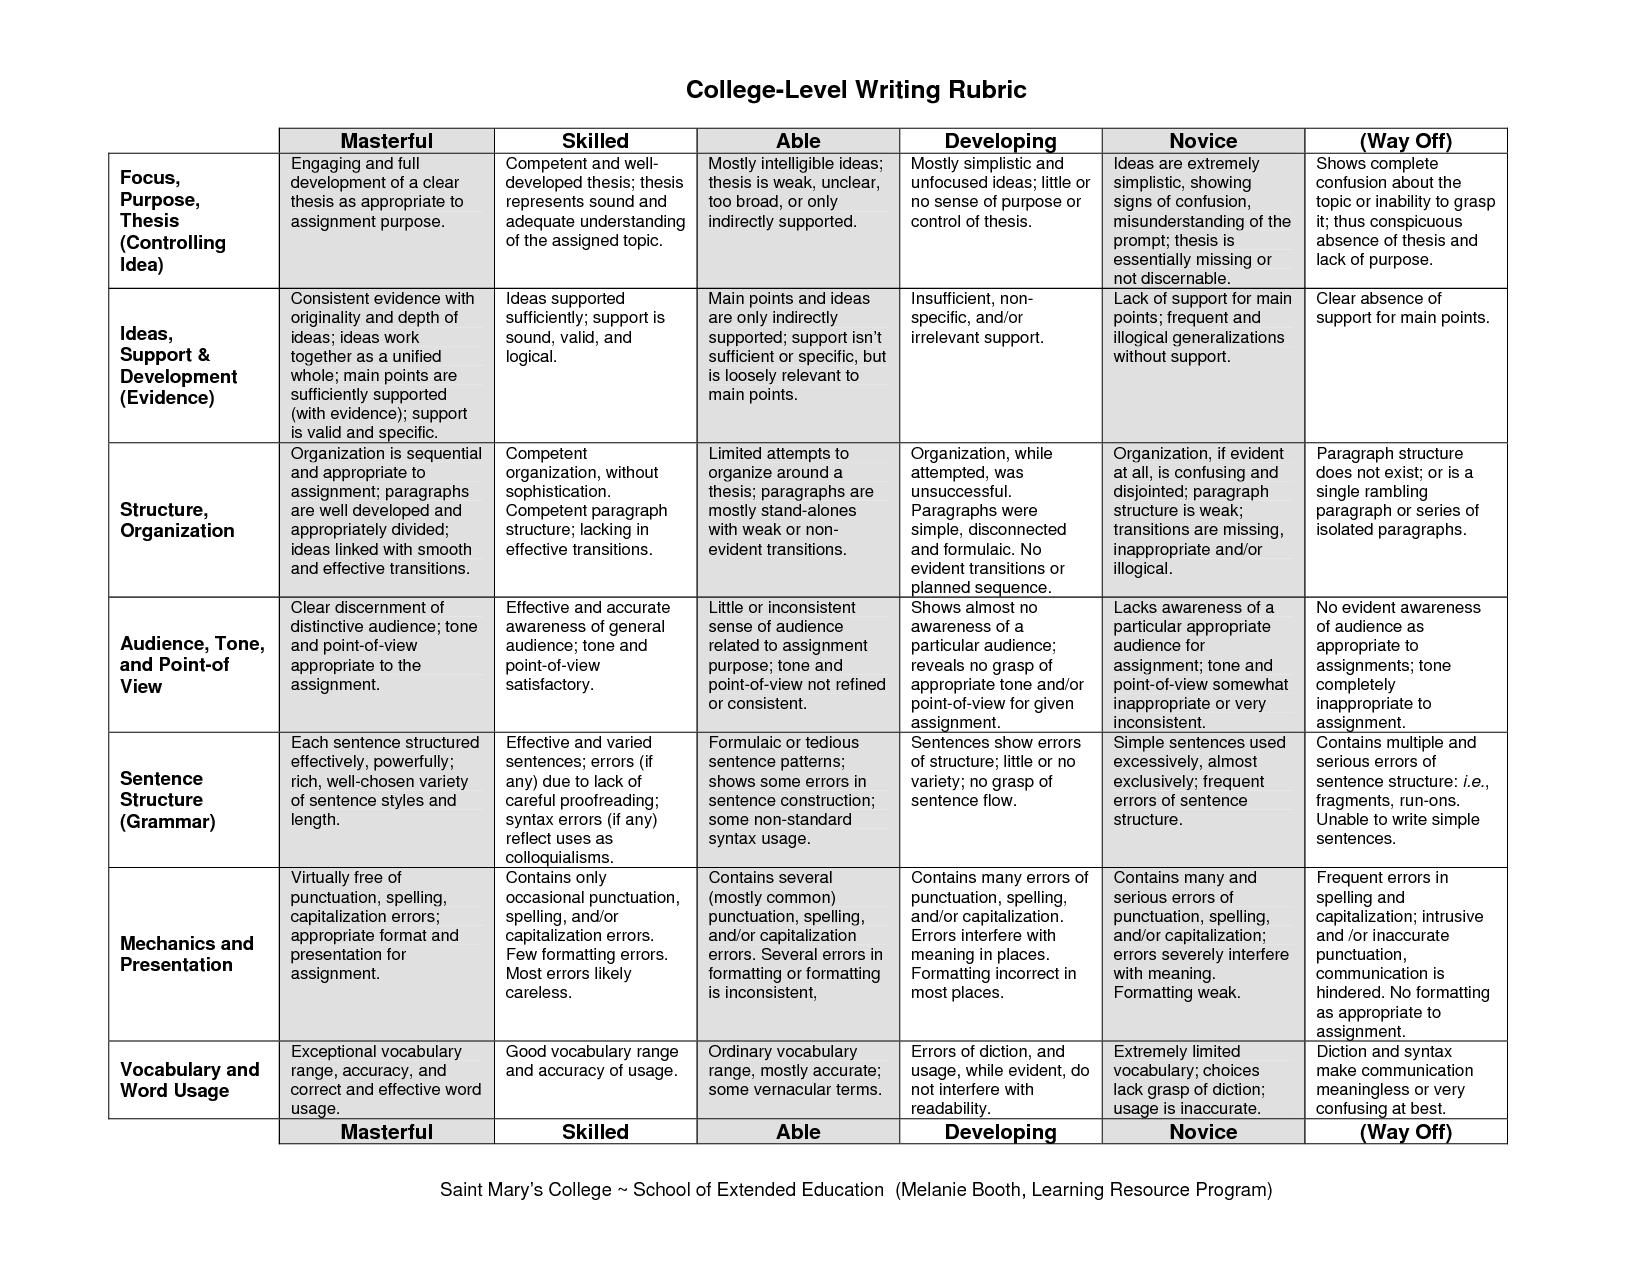 College Writing Rubric  Quite Useful This  Teaching College Writing Rubric  Quite Useful This